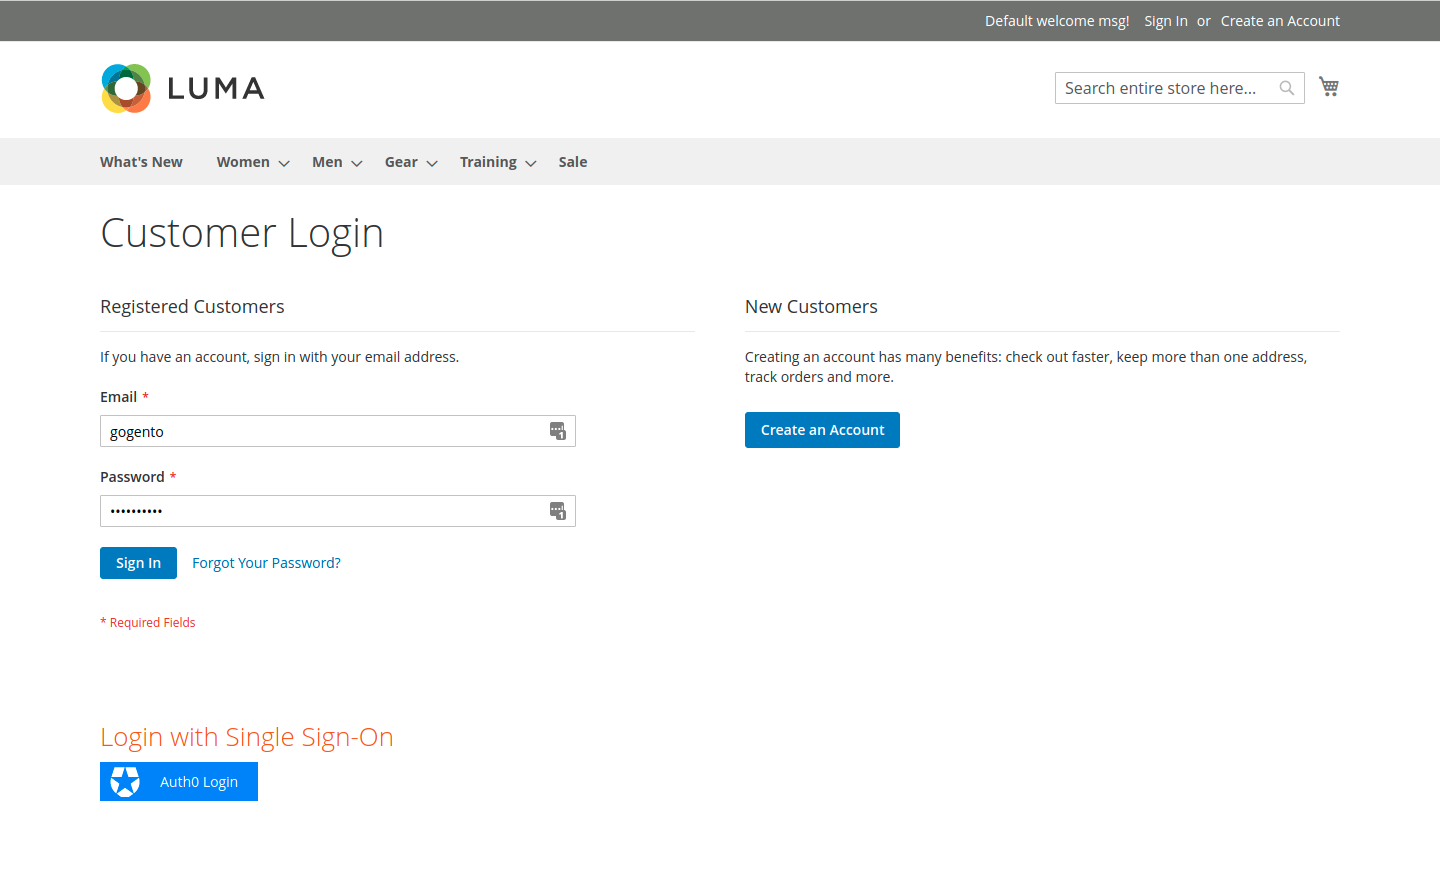 Customer Login Page In the Magento Frontend